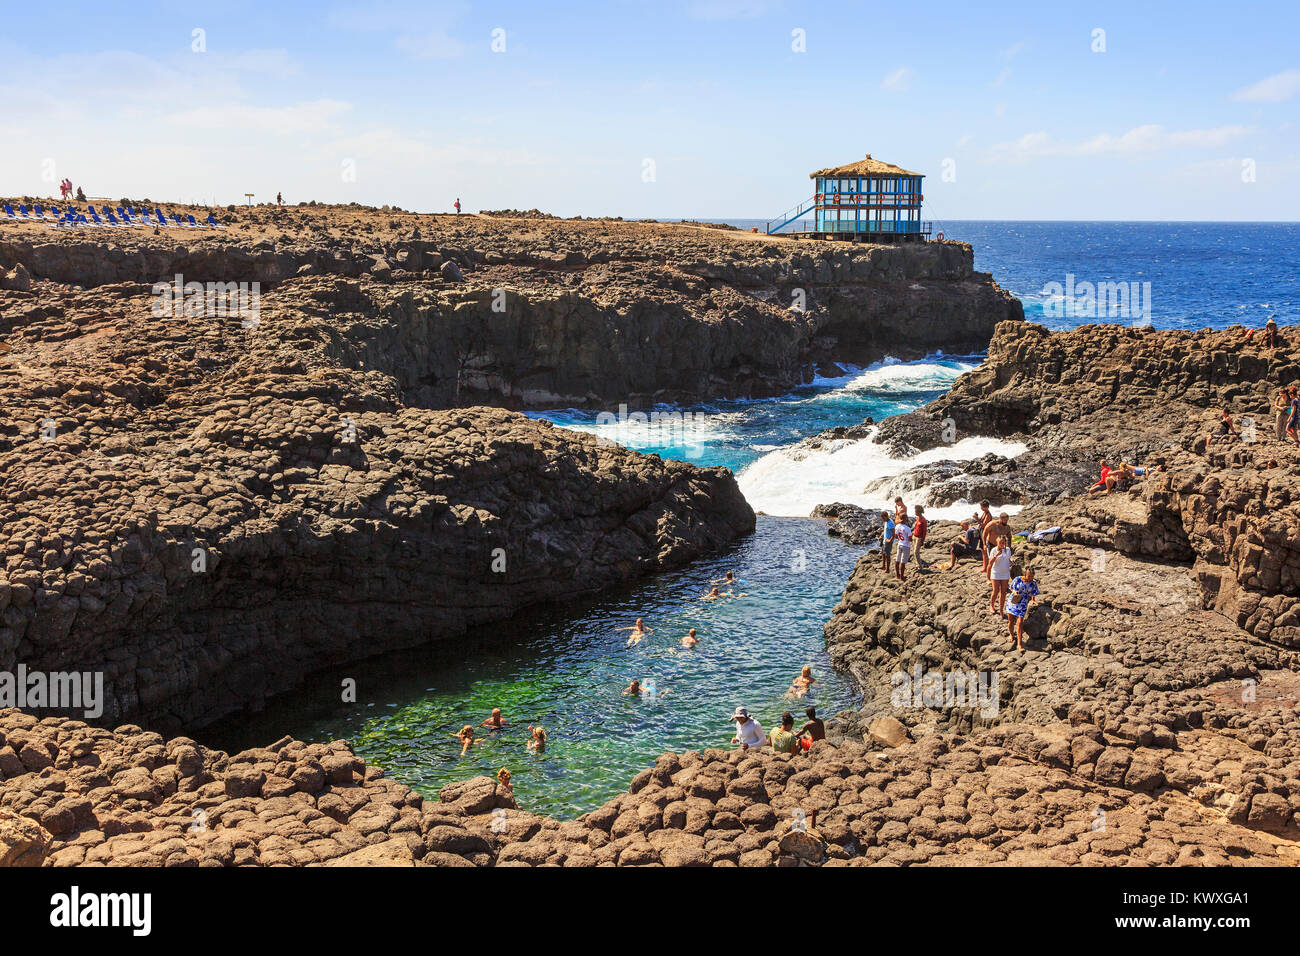 NAtural swimming pool formed in the rocks ar Baracona, on the west coast of Sal Island, Salinas, Cape Verde near - Stock Image